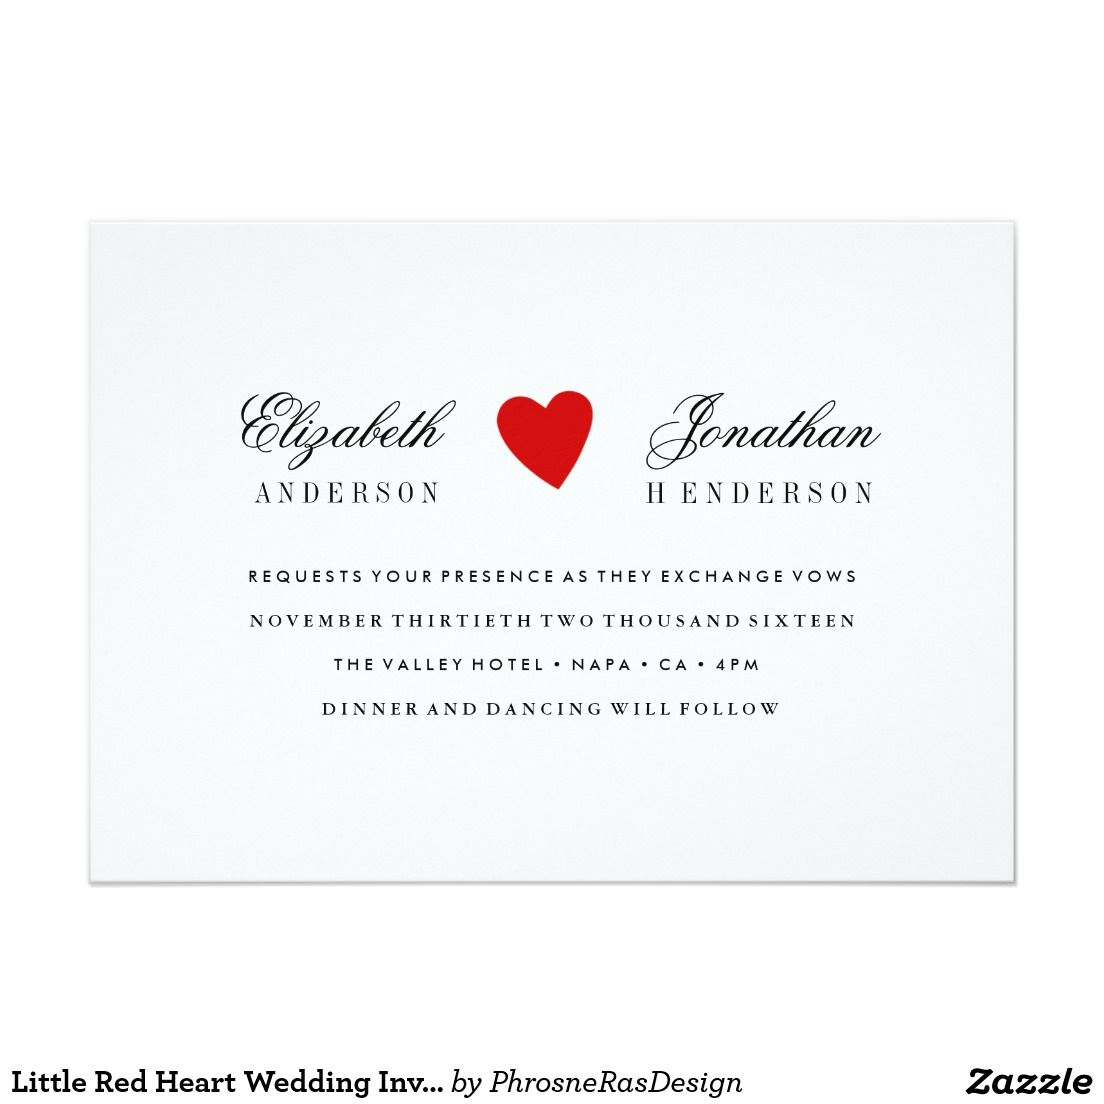 Little Red Heart Wedding Invitation | Zazzle - My products for sale ...